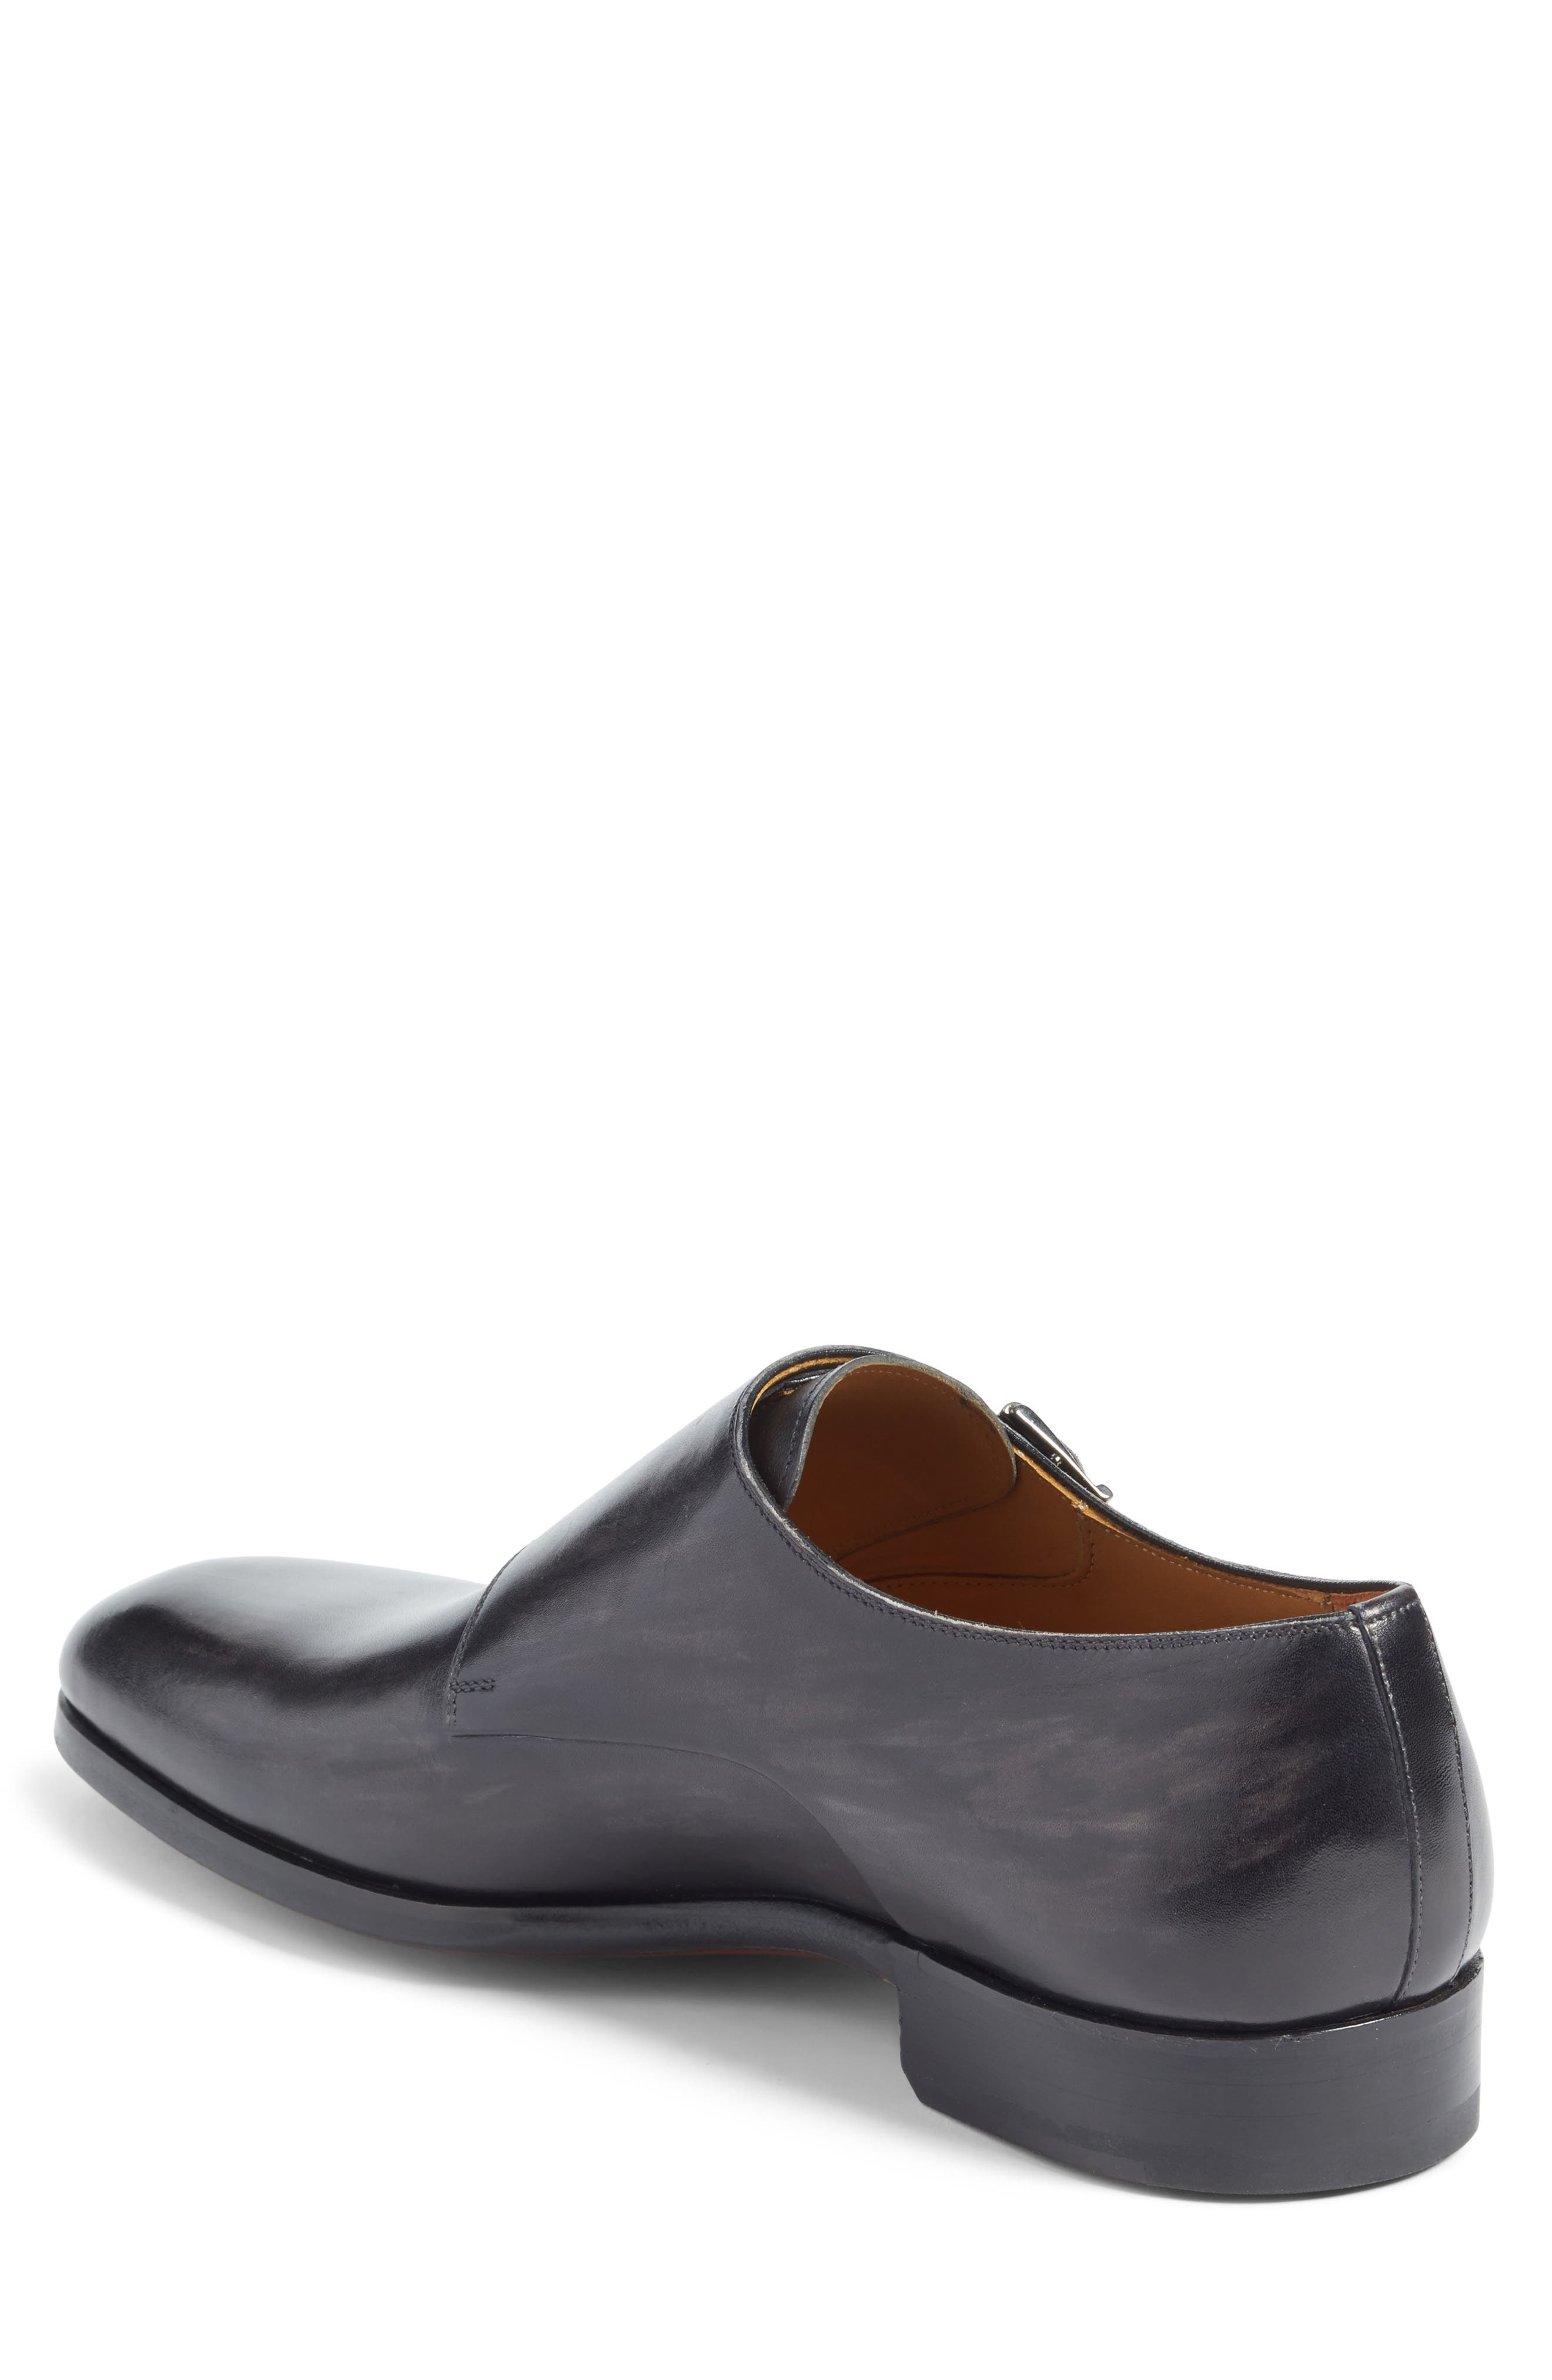 Lucio Double Strap Monk Shoe,                             Alternate thumbnail 2, color,                             LIGHT GREY LEATHER